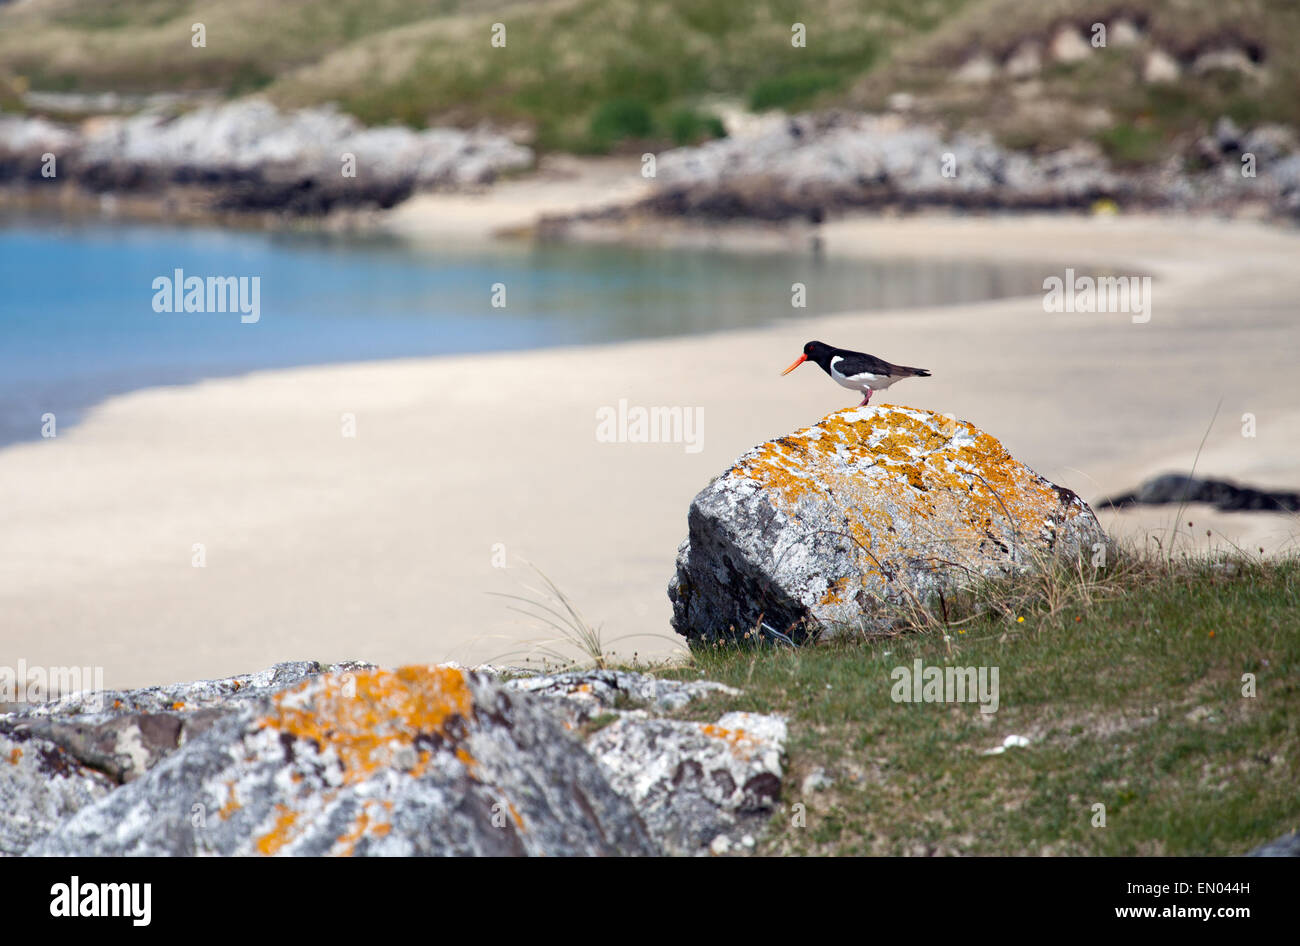 Oystercatcher on the Isle of Harris, Scotland - Stock Image